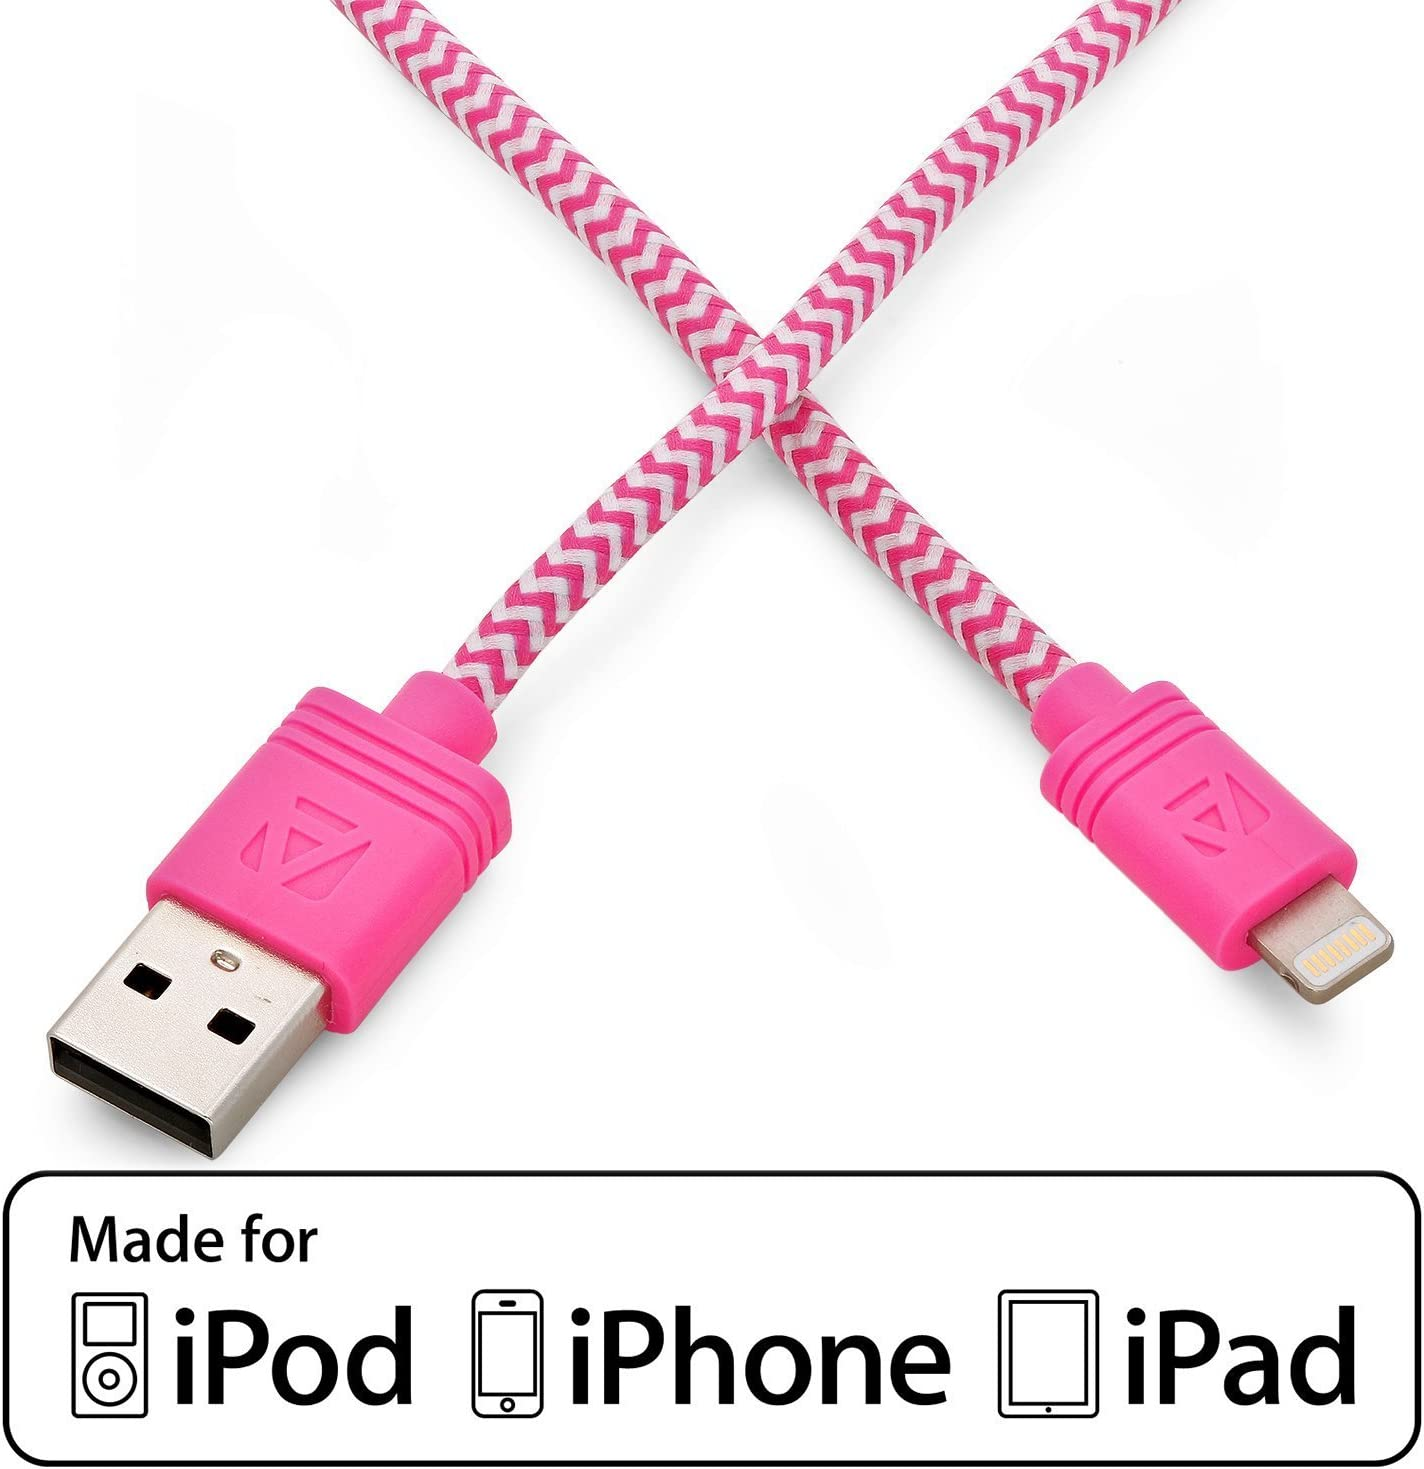 Aduro iPhone iPad Charging Cable, 10FT (3M) Apple-Certified (MFI) Lightning to USB Fiber Cloth Charge & Sync Cable (Pink)